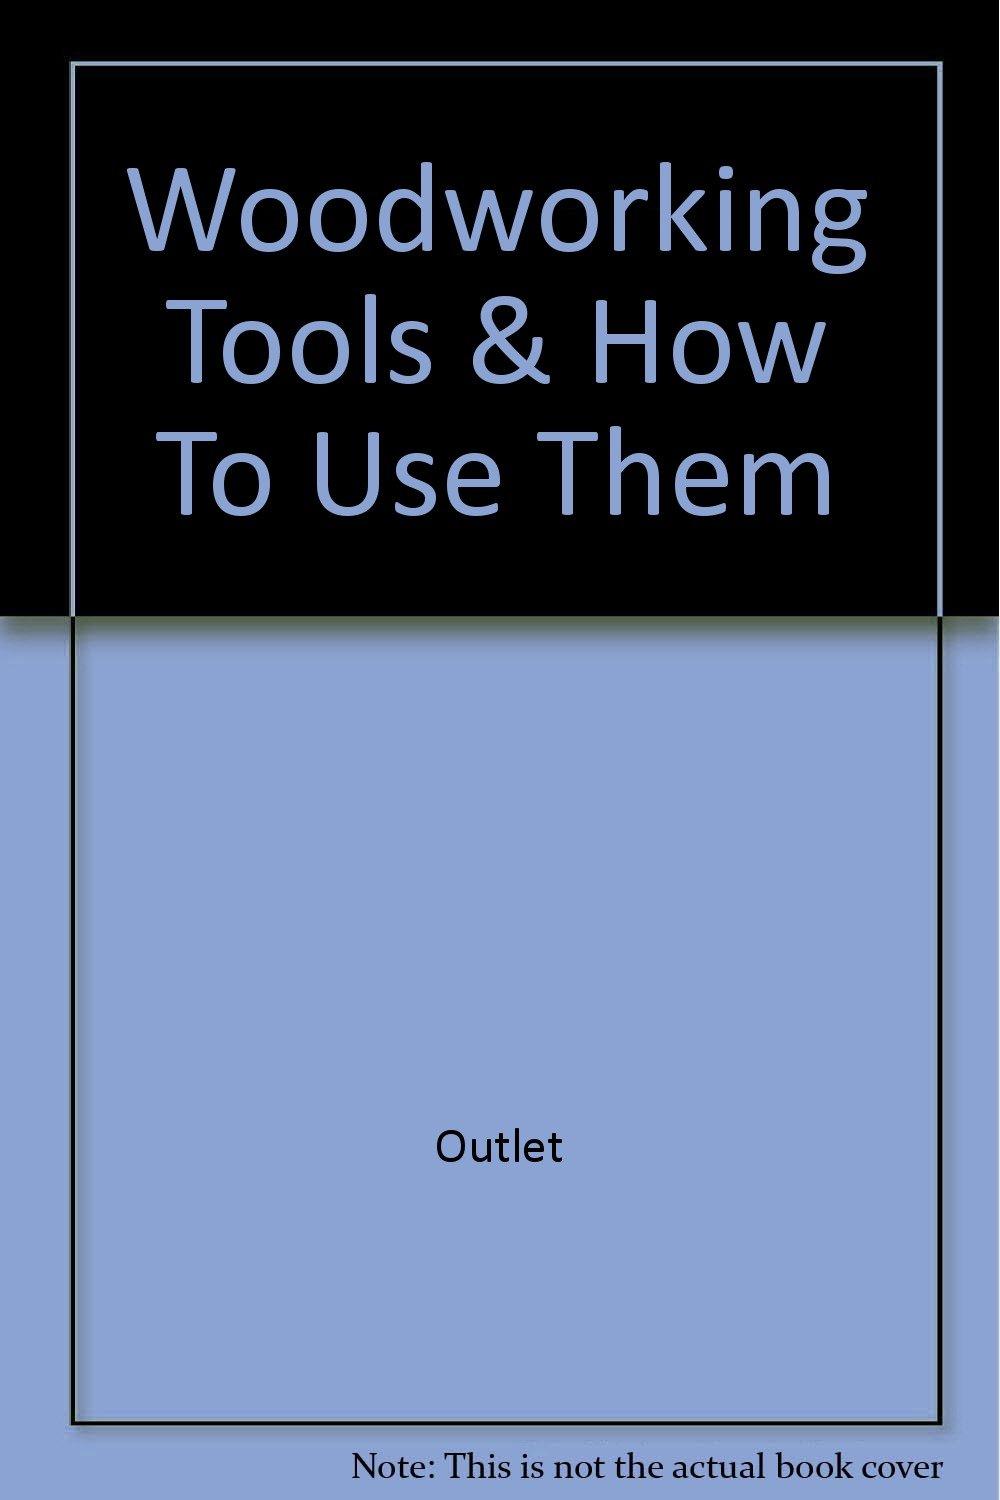 Woodworking Tools & How To Use Them